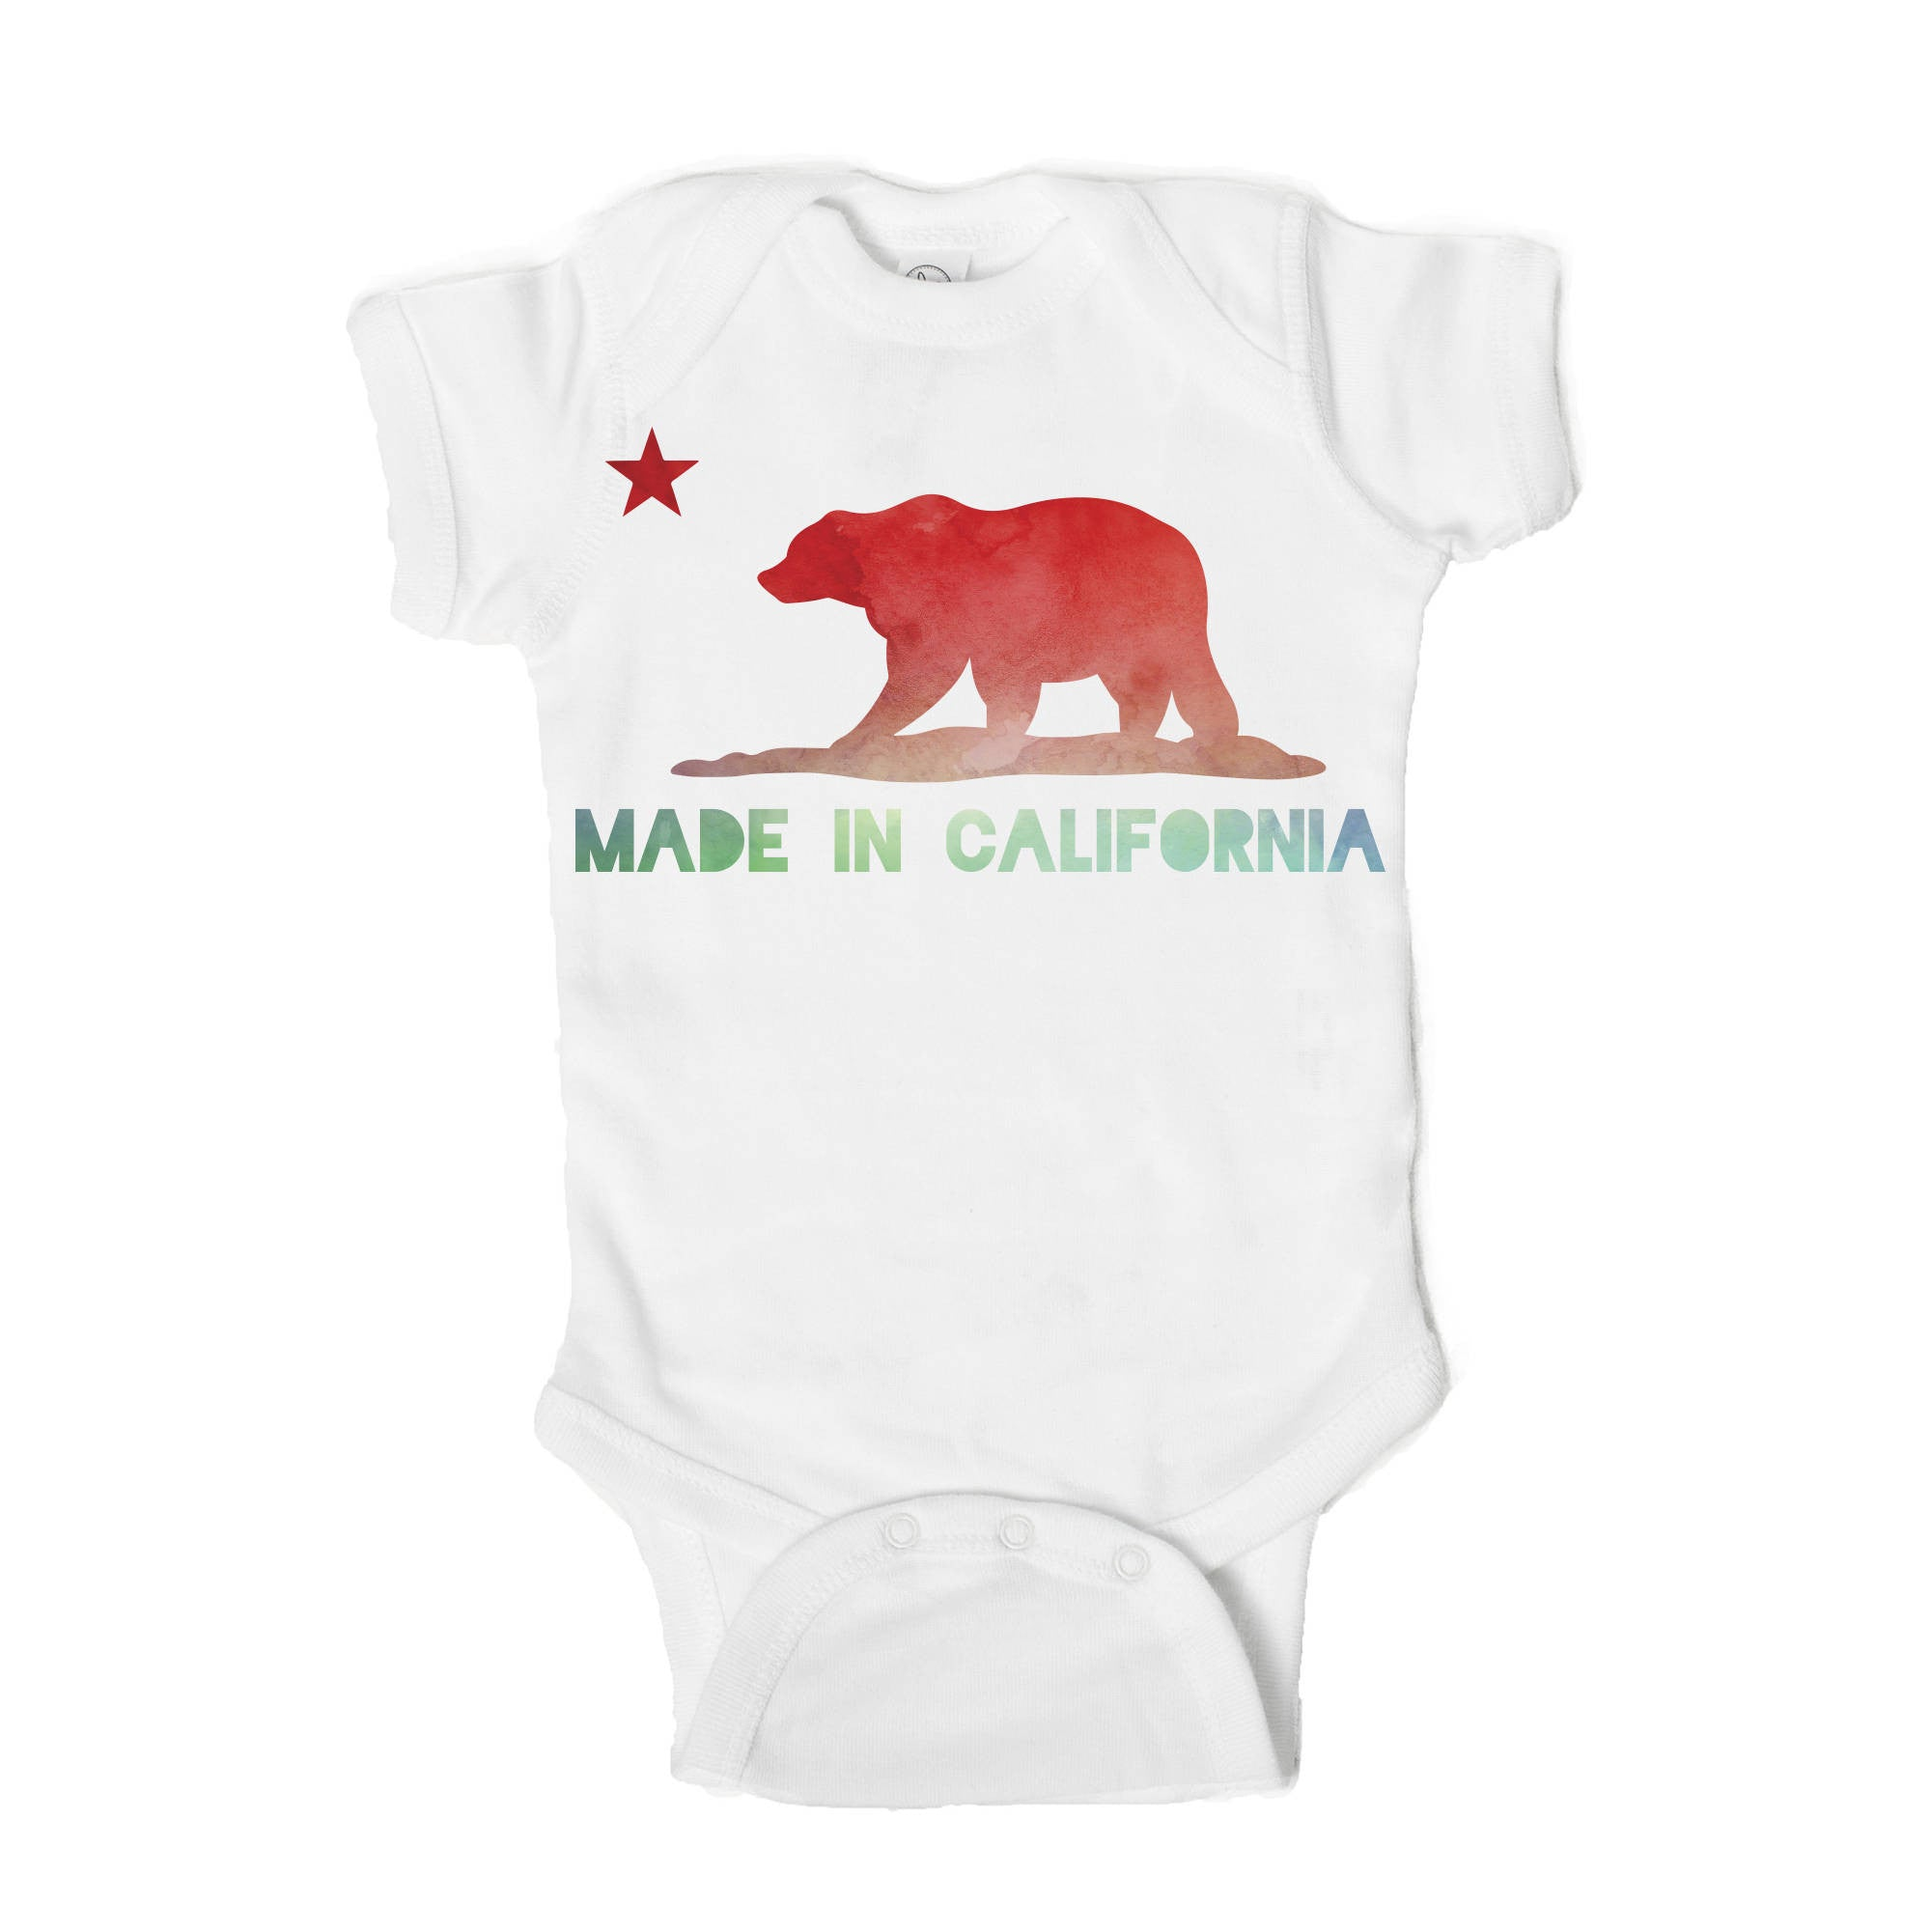 Made in California Baby Onesie - One Strange Bird